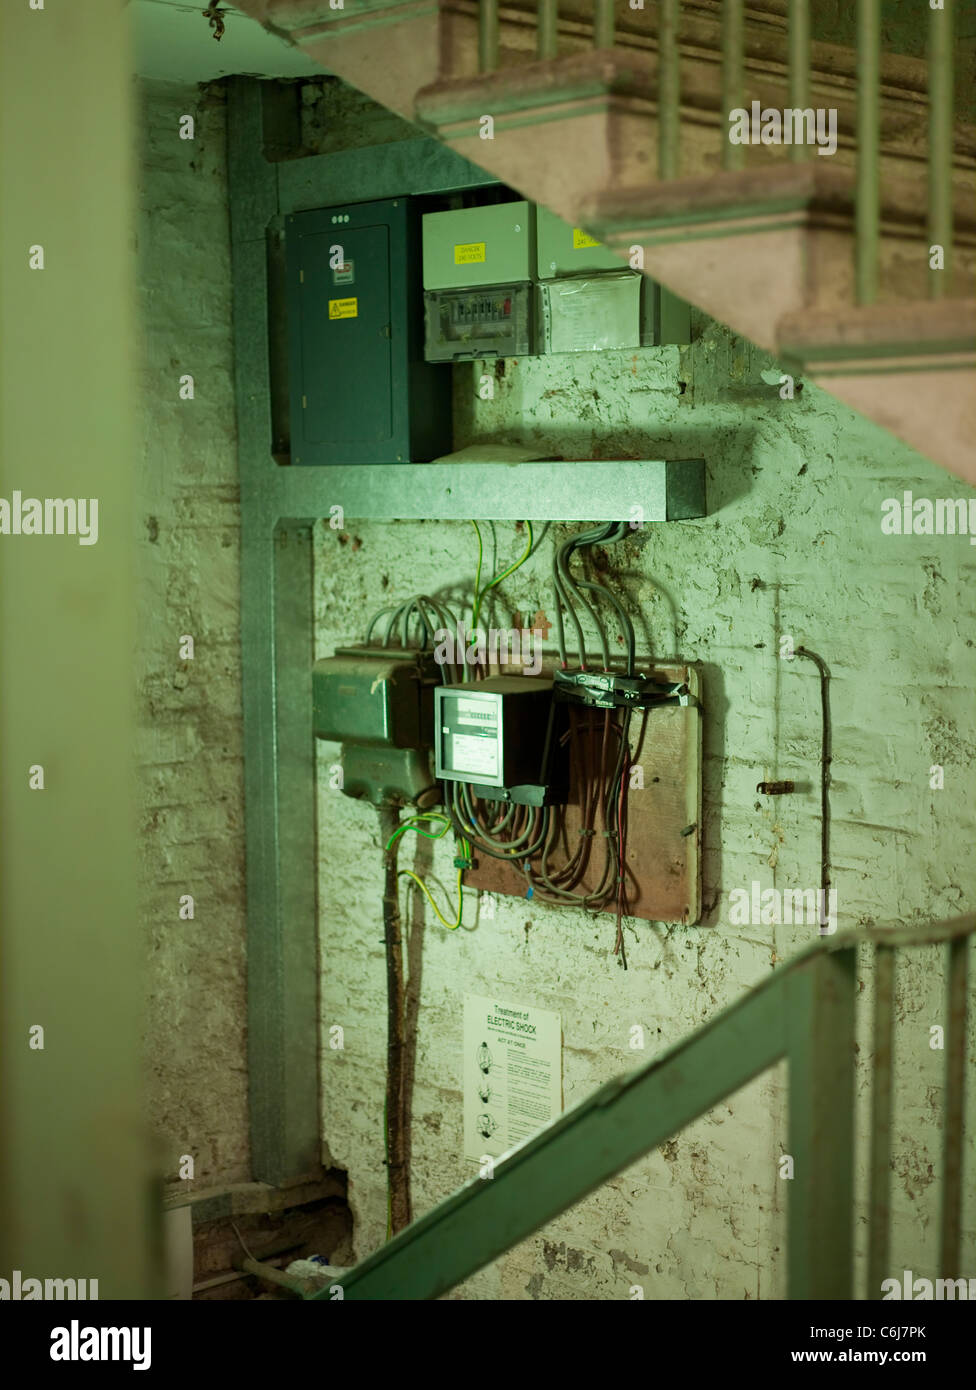 hight resolution of collection of fuse box and electricity meters in an old building stock image